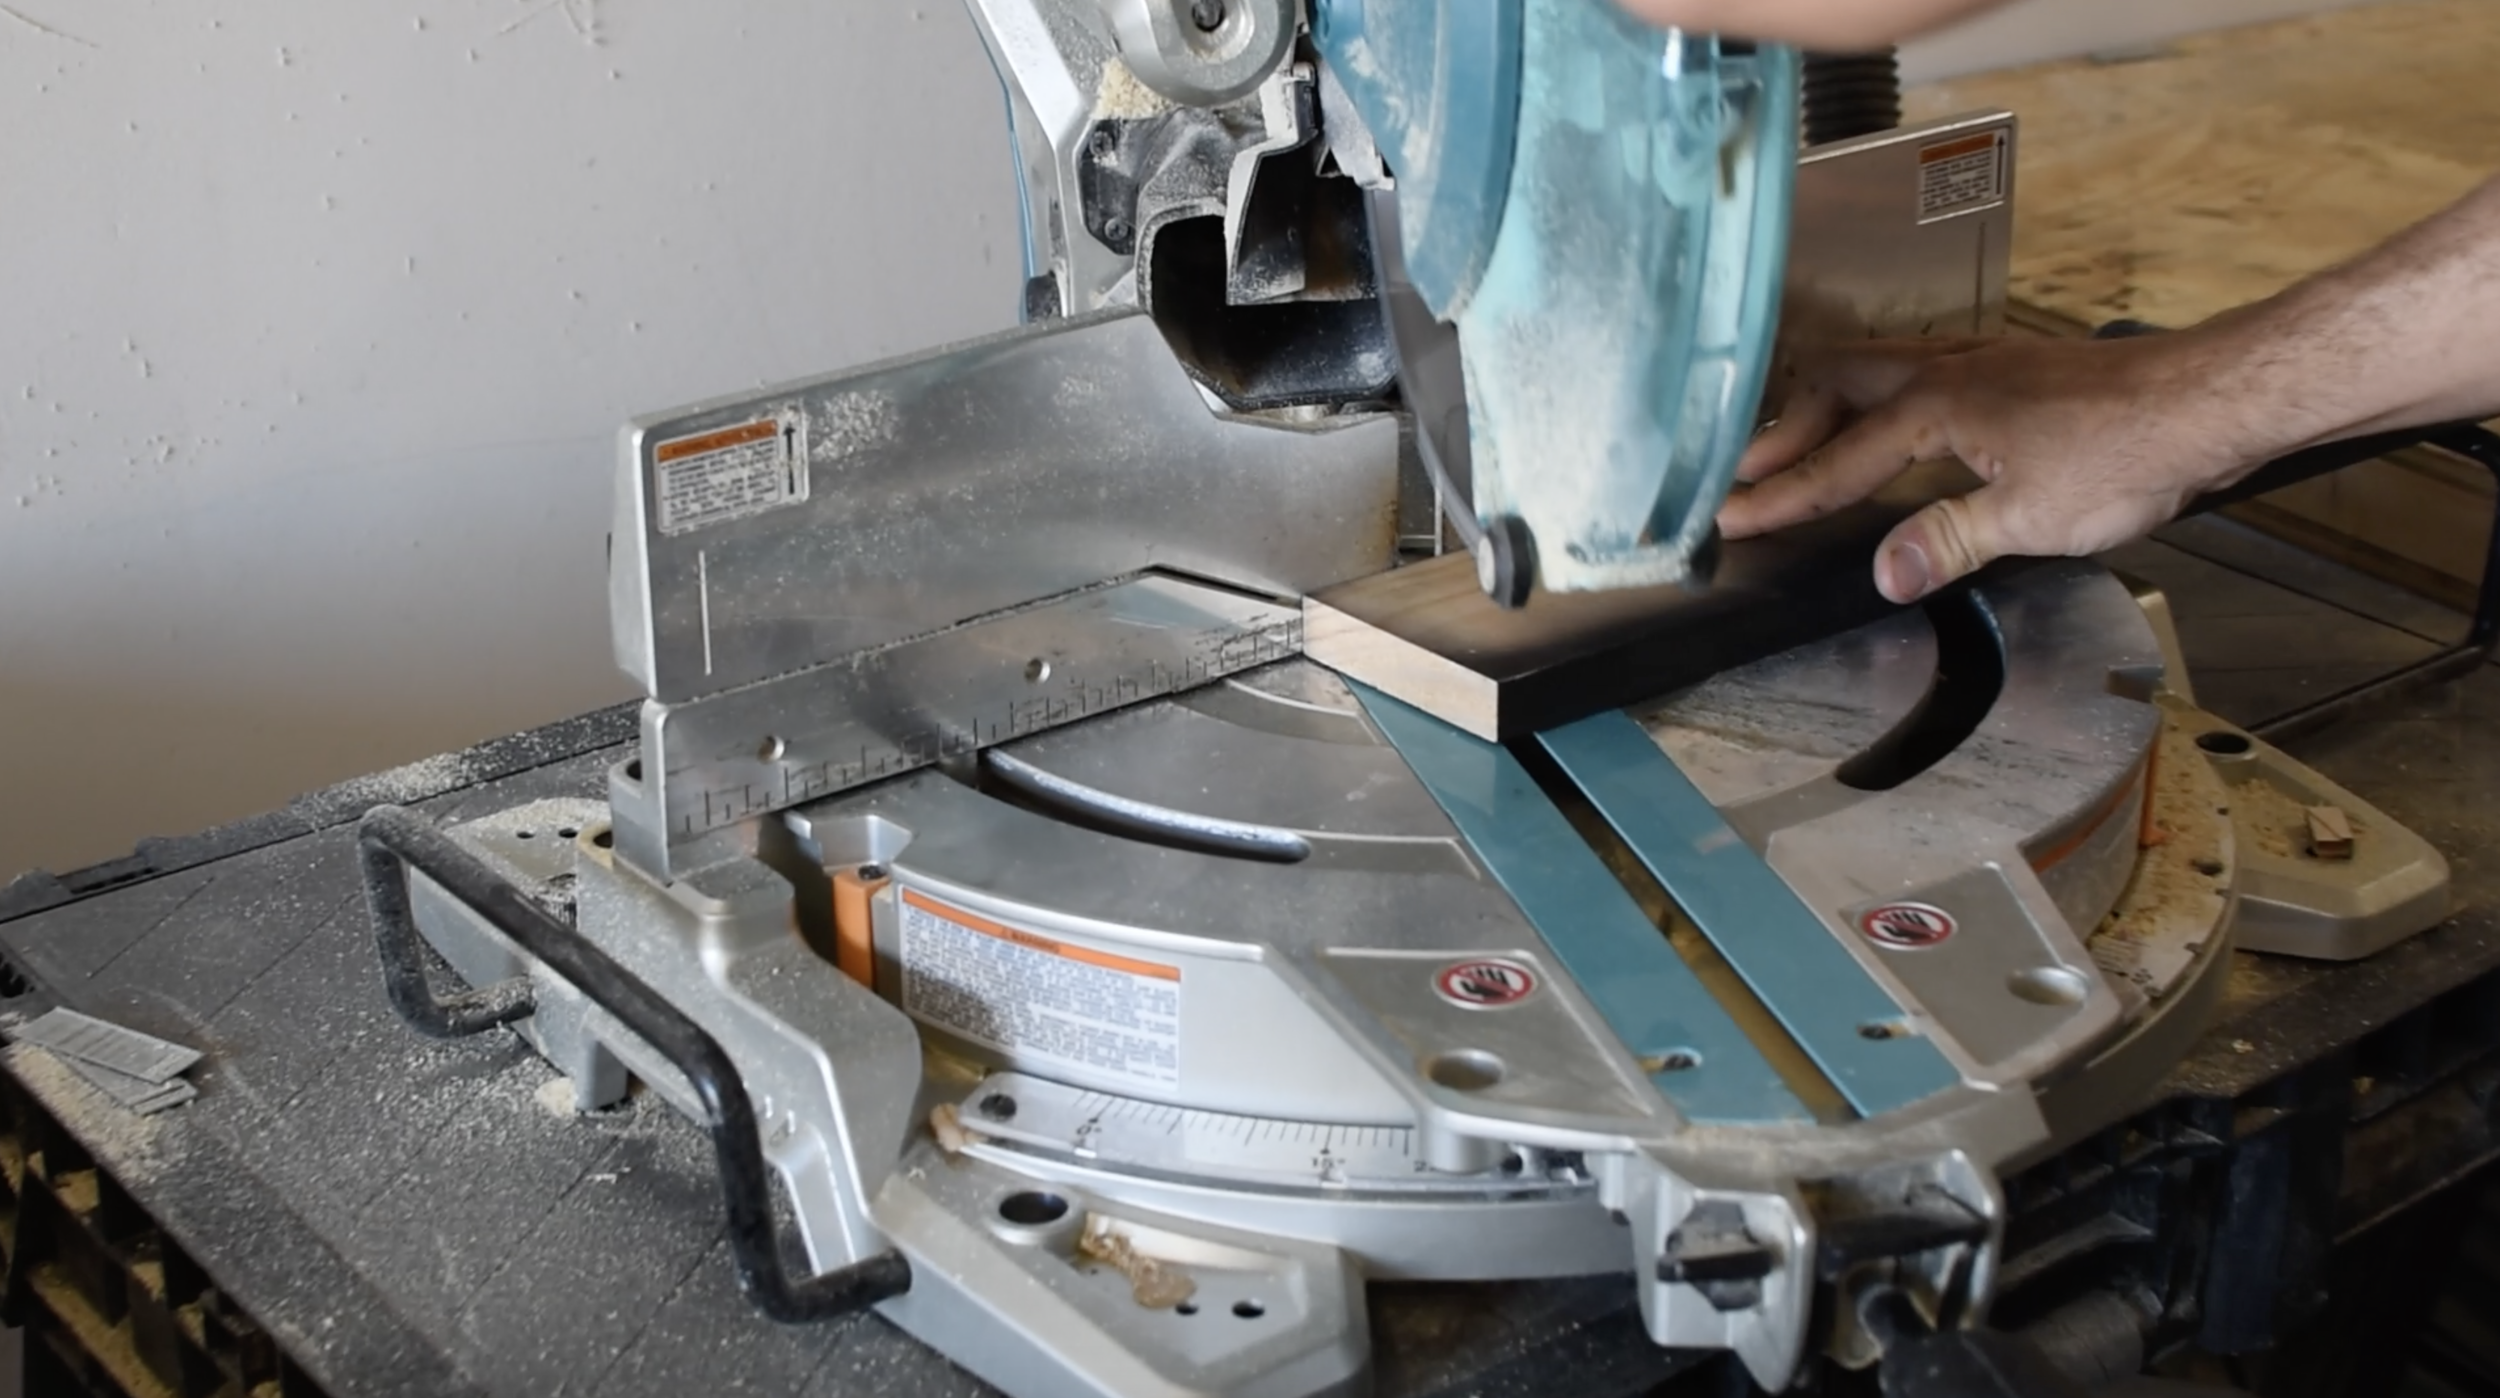 STEP 2 - Set your miter saw to 22.5 degree and make the first cut from the end of the 1x6. Place the cut end of board on the middle line of the plywood backer. Make a line where the board meets the edge of the plywood. This will give you the length of where you need to cut it